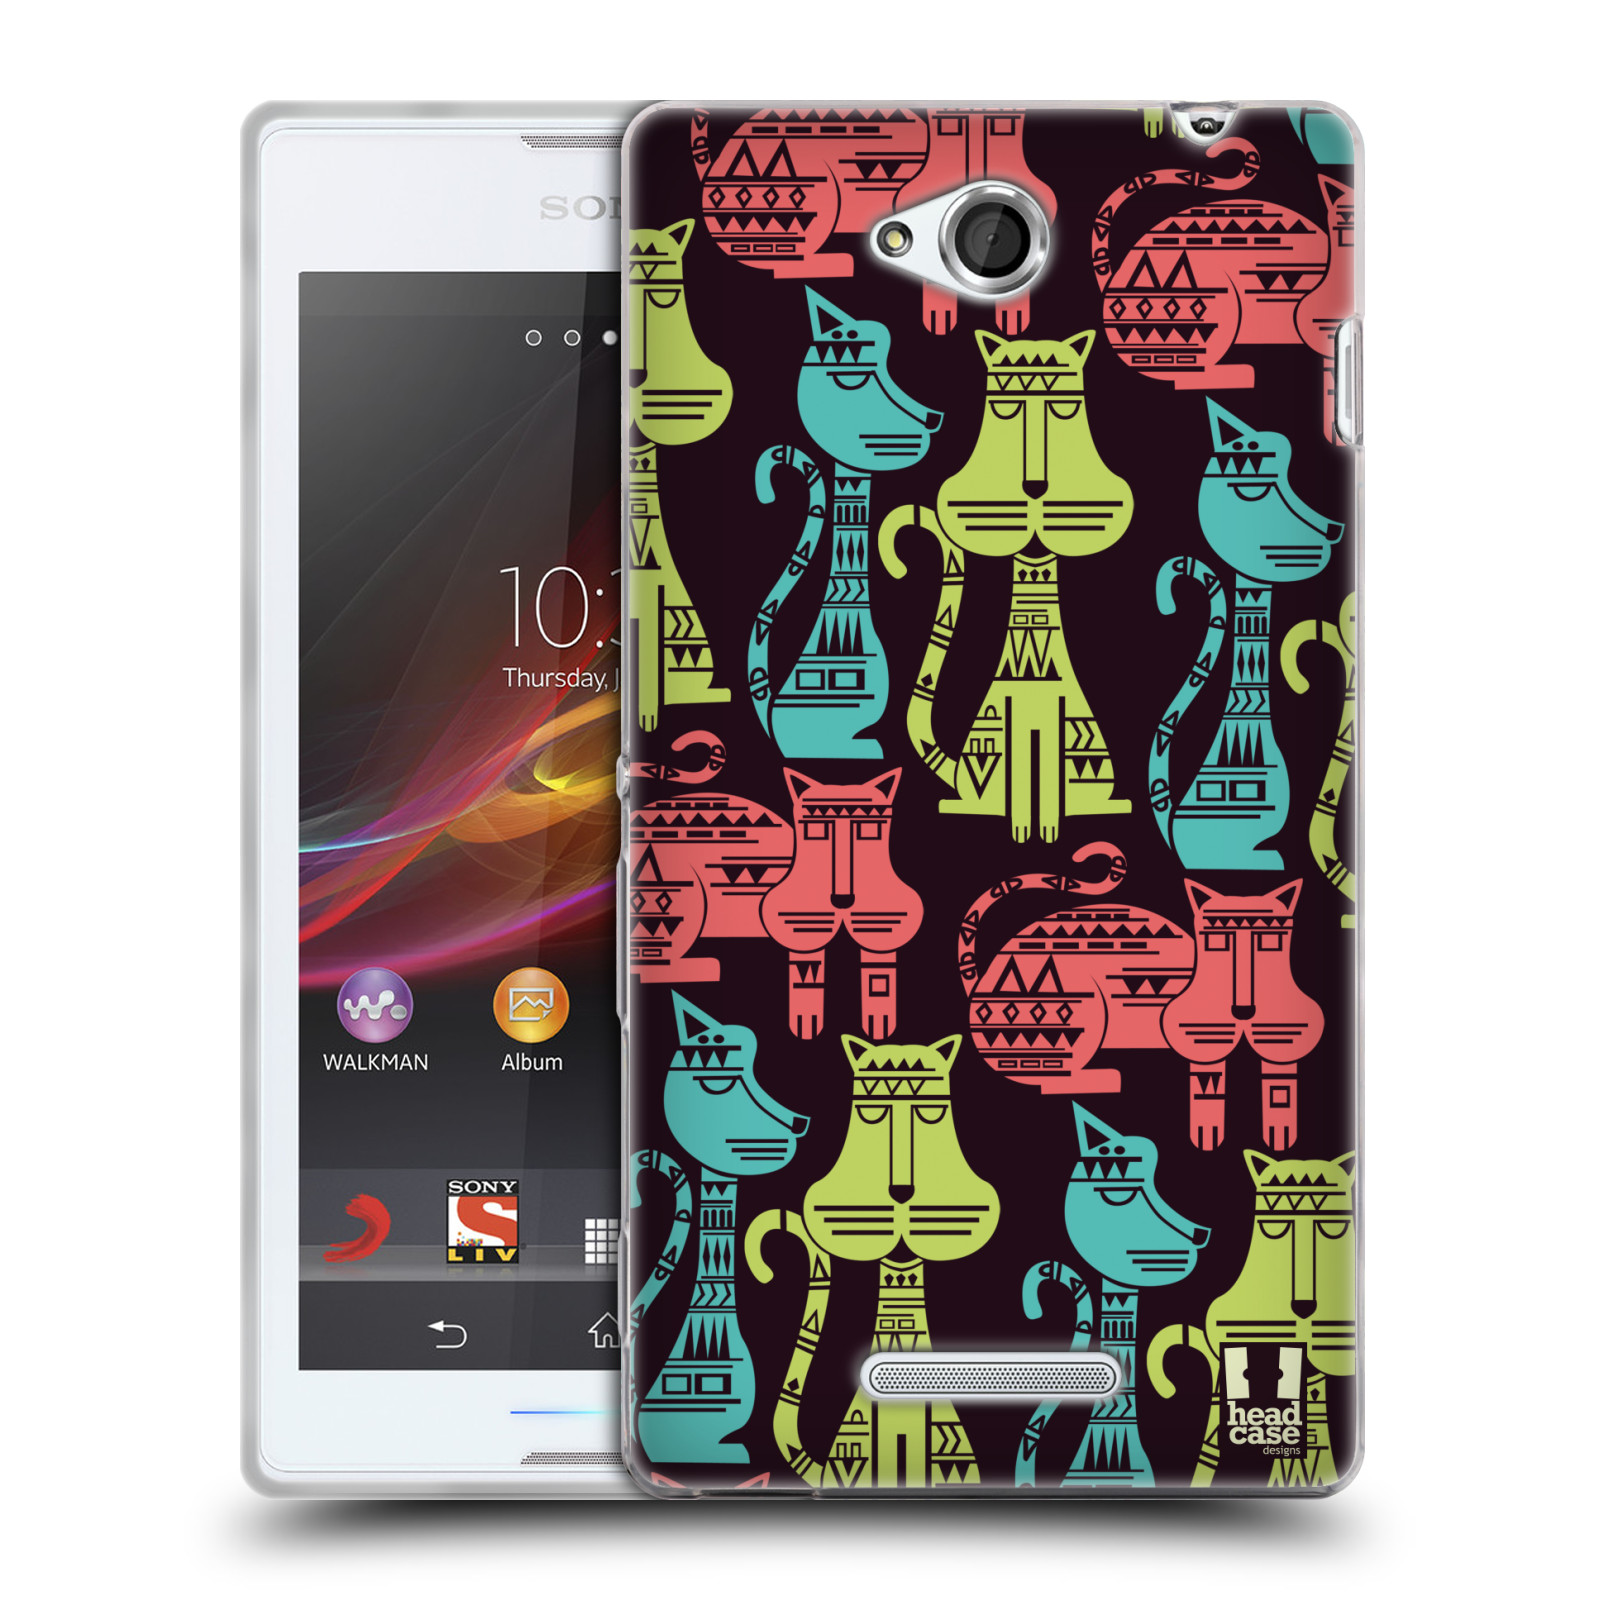 HEAD-CASE-DESIGNS-AZTEC-CATS-PATTERN-SOFT-GEL-CASE-FOR-SONY-PHONES-3